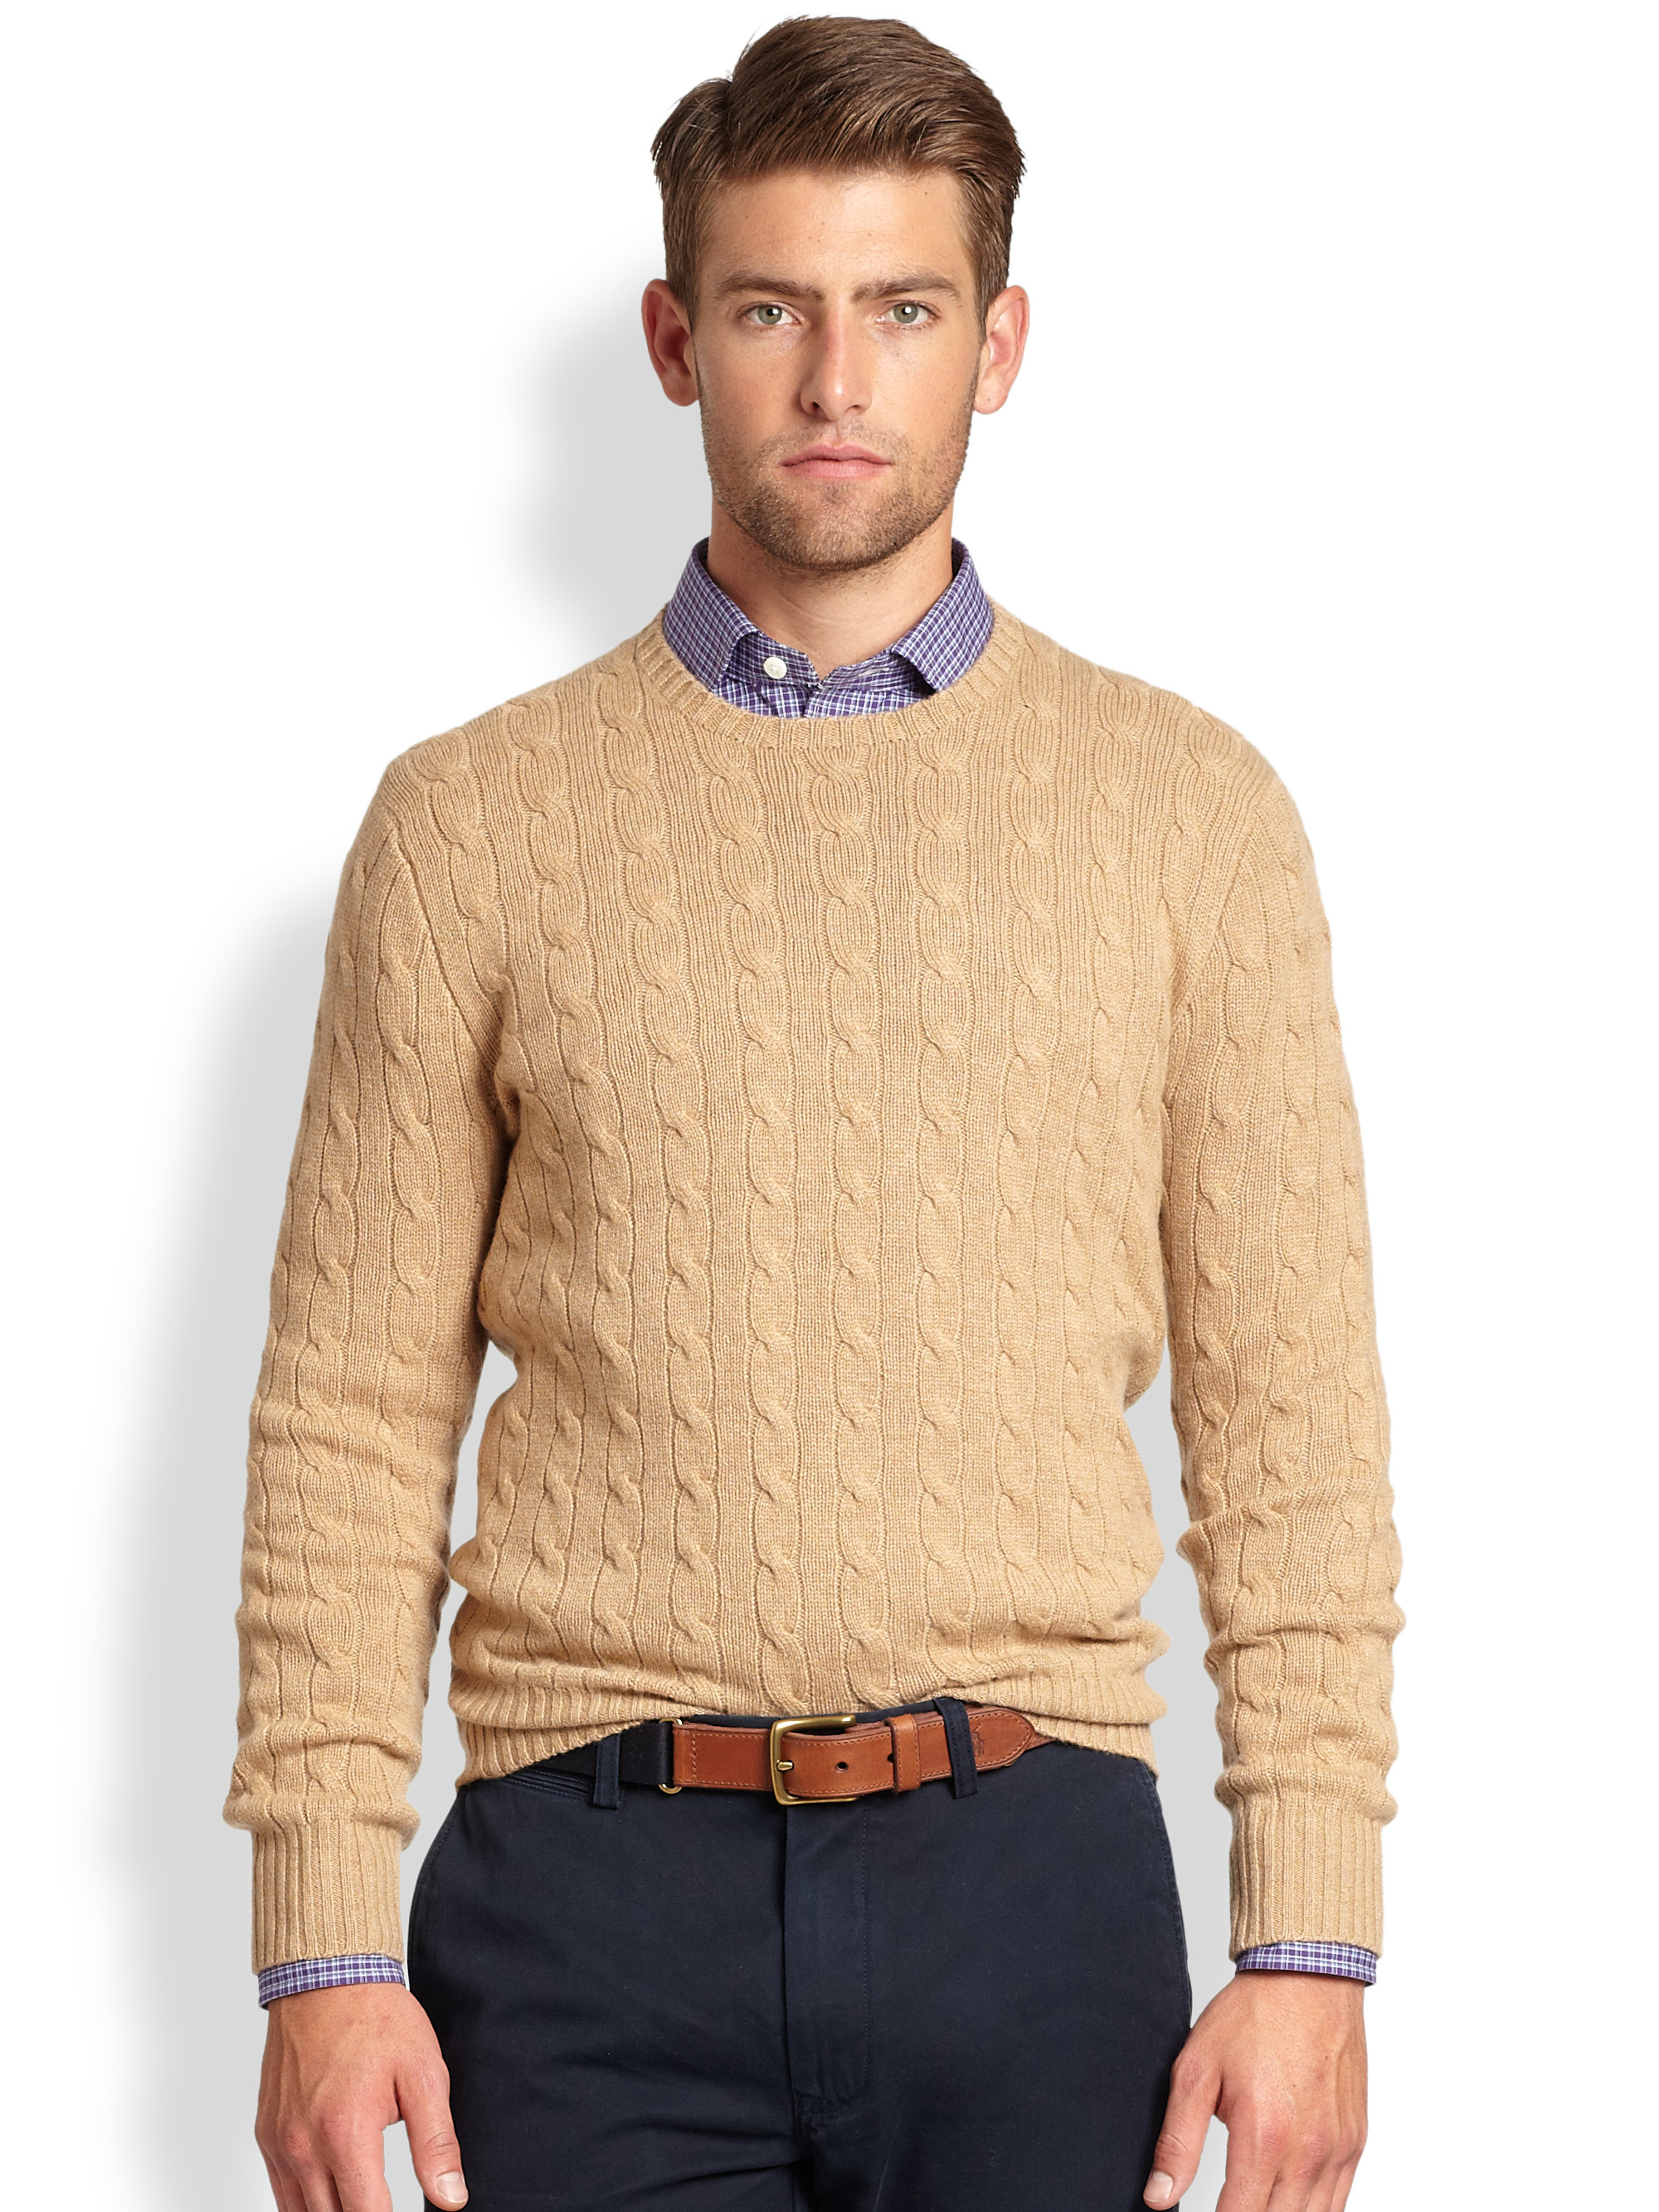 Polo ralph lauren Cable Knit Cashmere Crewneck Sweater in Natural ...